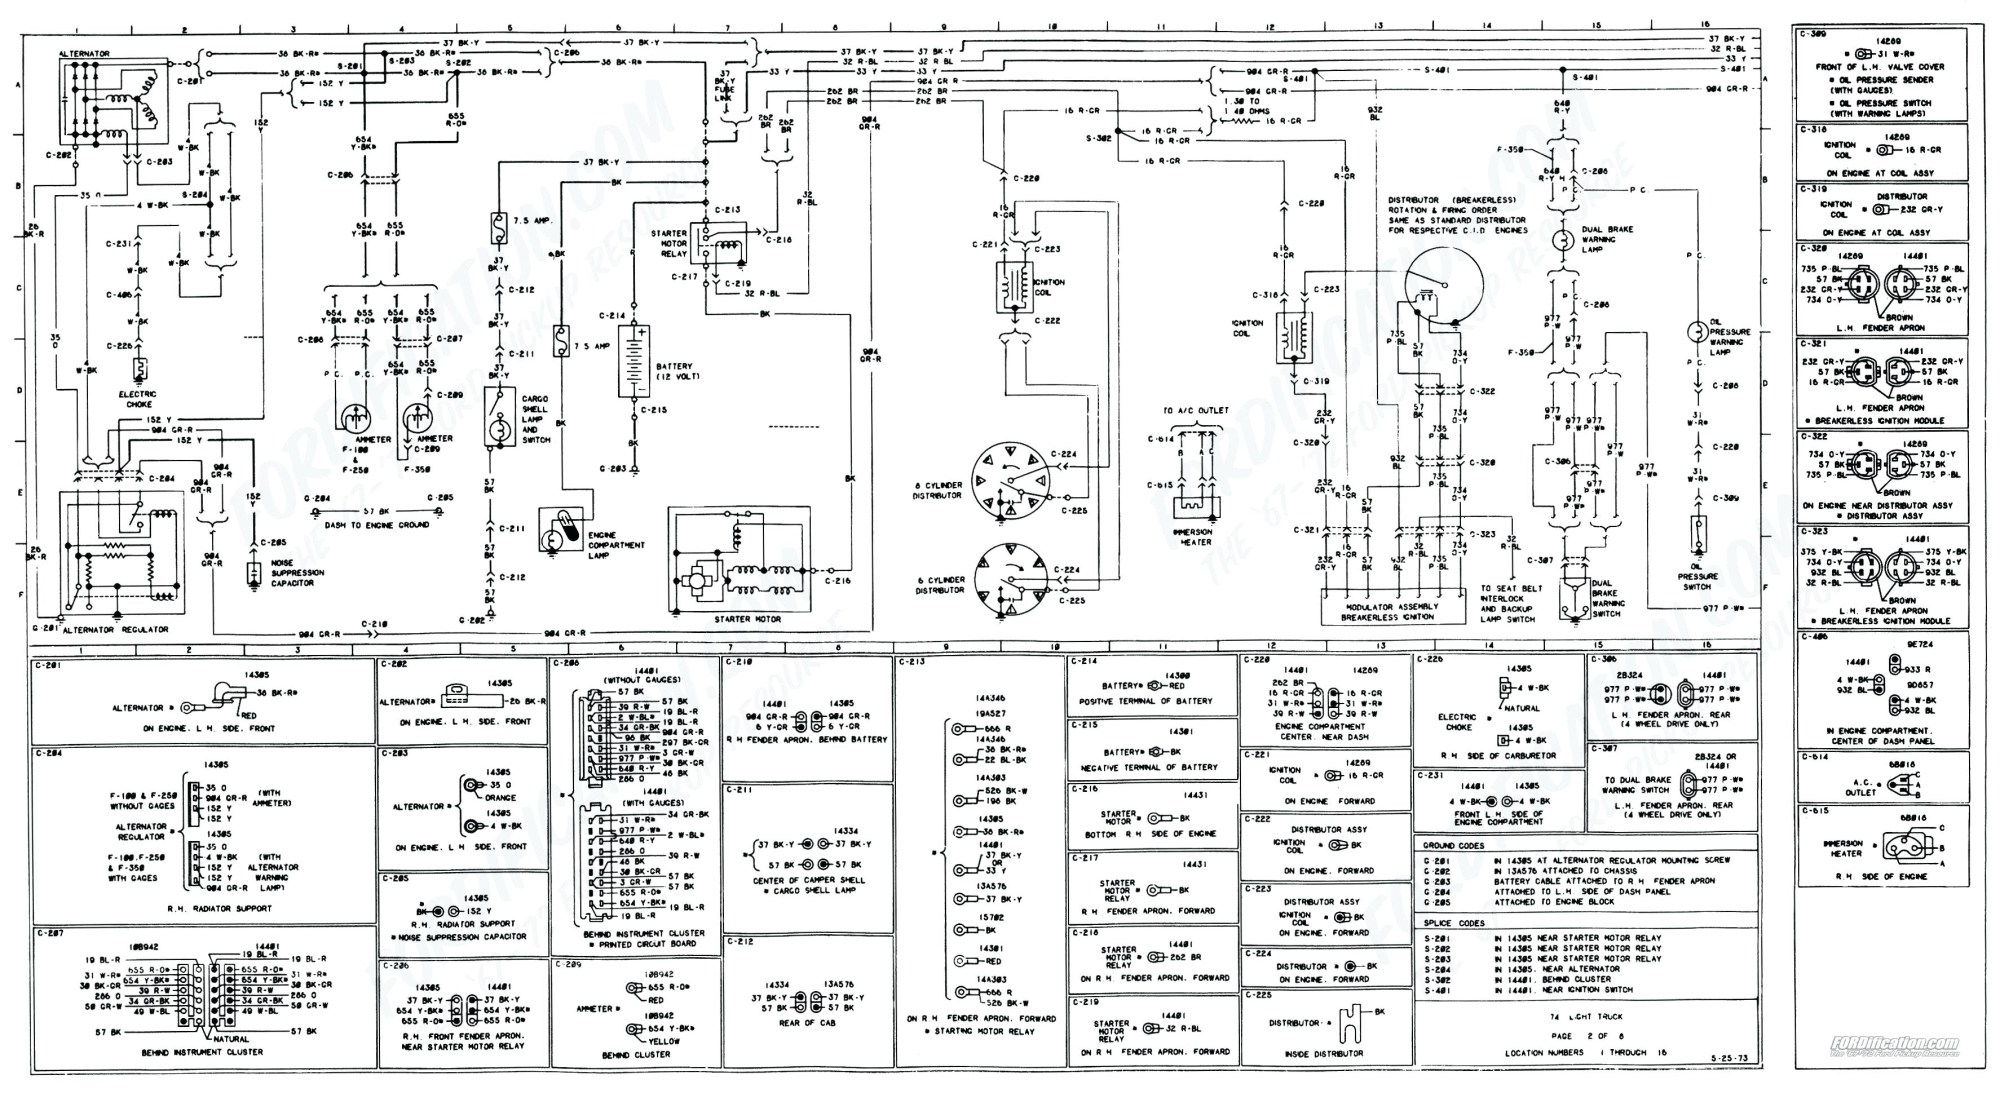 hight resolution of 2005 ford f750 fuse diagram wiring diagram toolbox 2003 ford f250 fuse diagram 4wd 2003 ford f750 fuse diagram